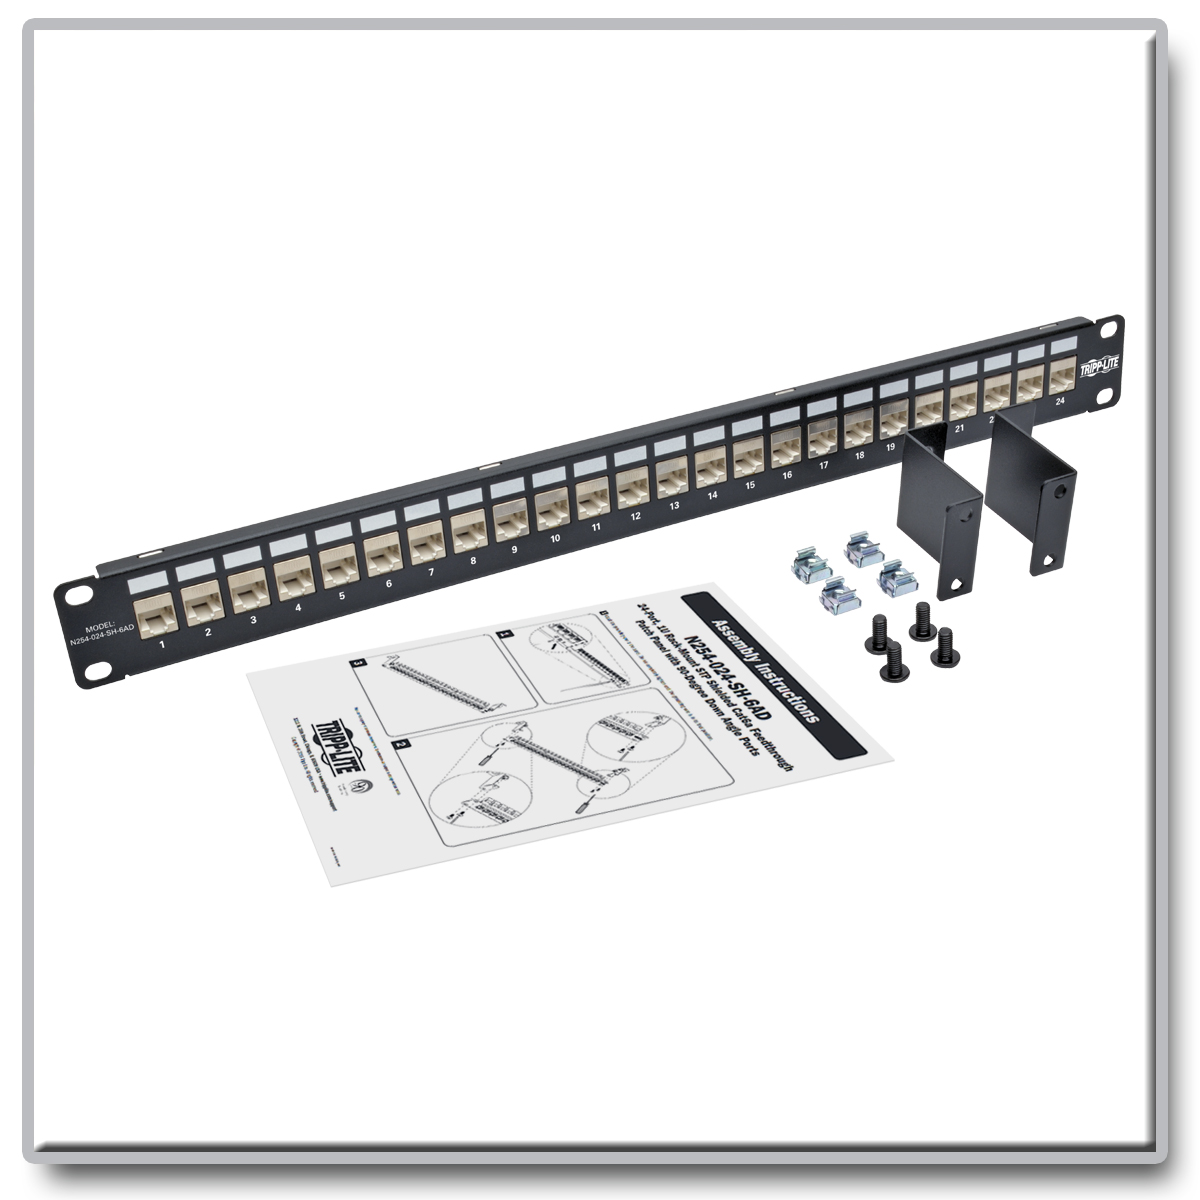 Tripp Lite 24 Port Cat6a Shielded Feedthrough Patch Panel Down 19inch Cat6 Utp T568a T568b Wiring 1ru 110 Termination Product Image